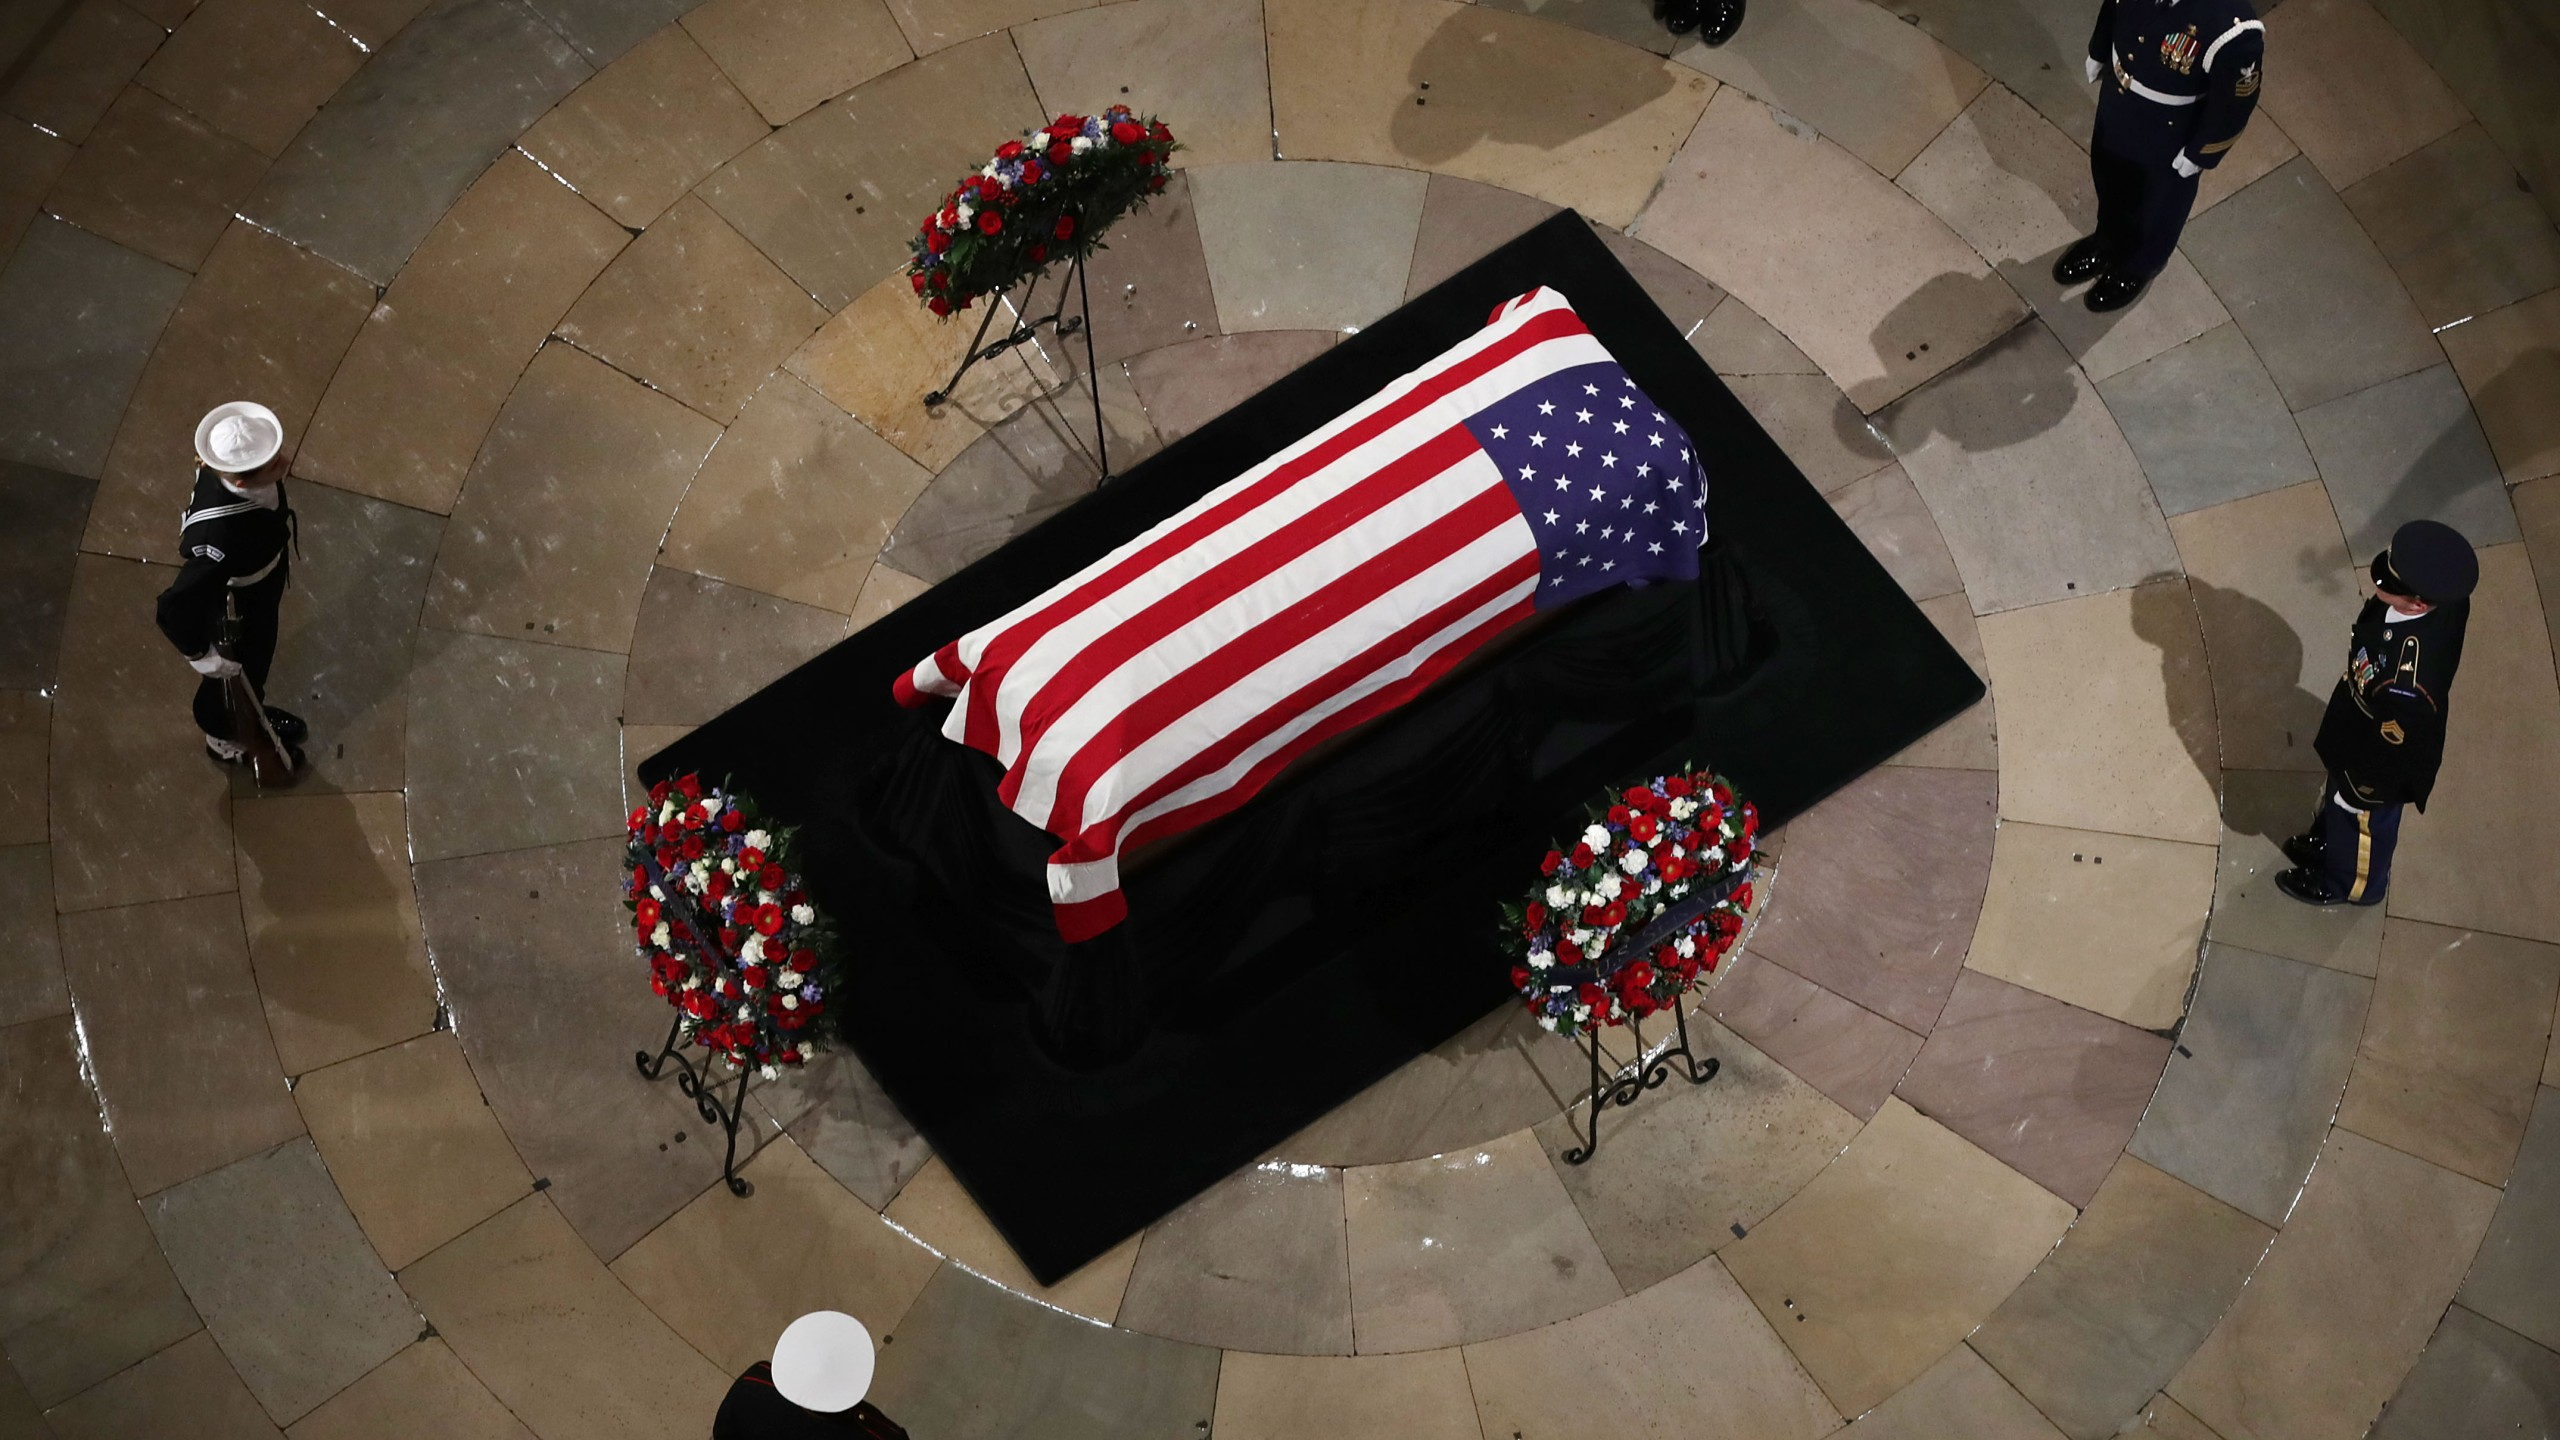 A U.S. military honor guard stands watch as former U.S. President George H.W. Bush lies in state in the U.S. Capitol Rotunda December 03, 2018 in Washington, DC. (Credit: Chip Somodevilla/Getty Images)